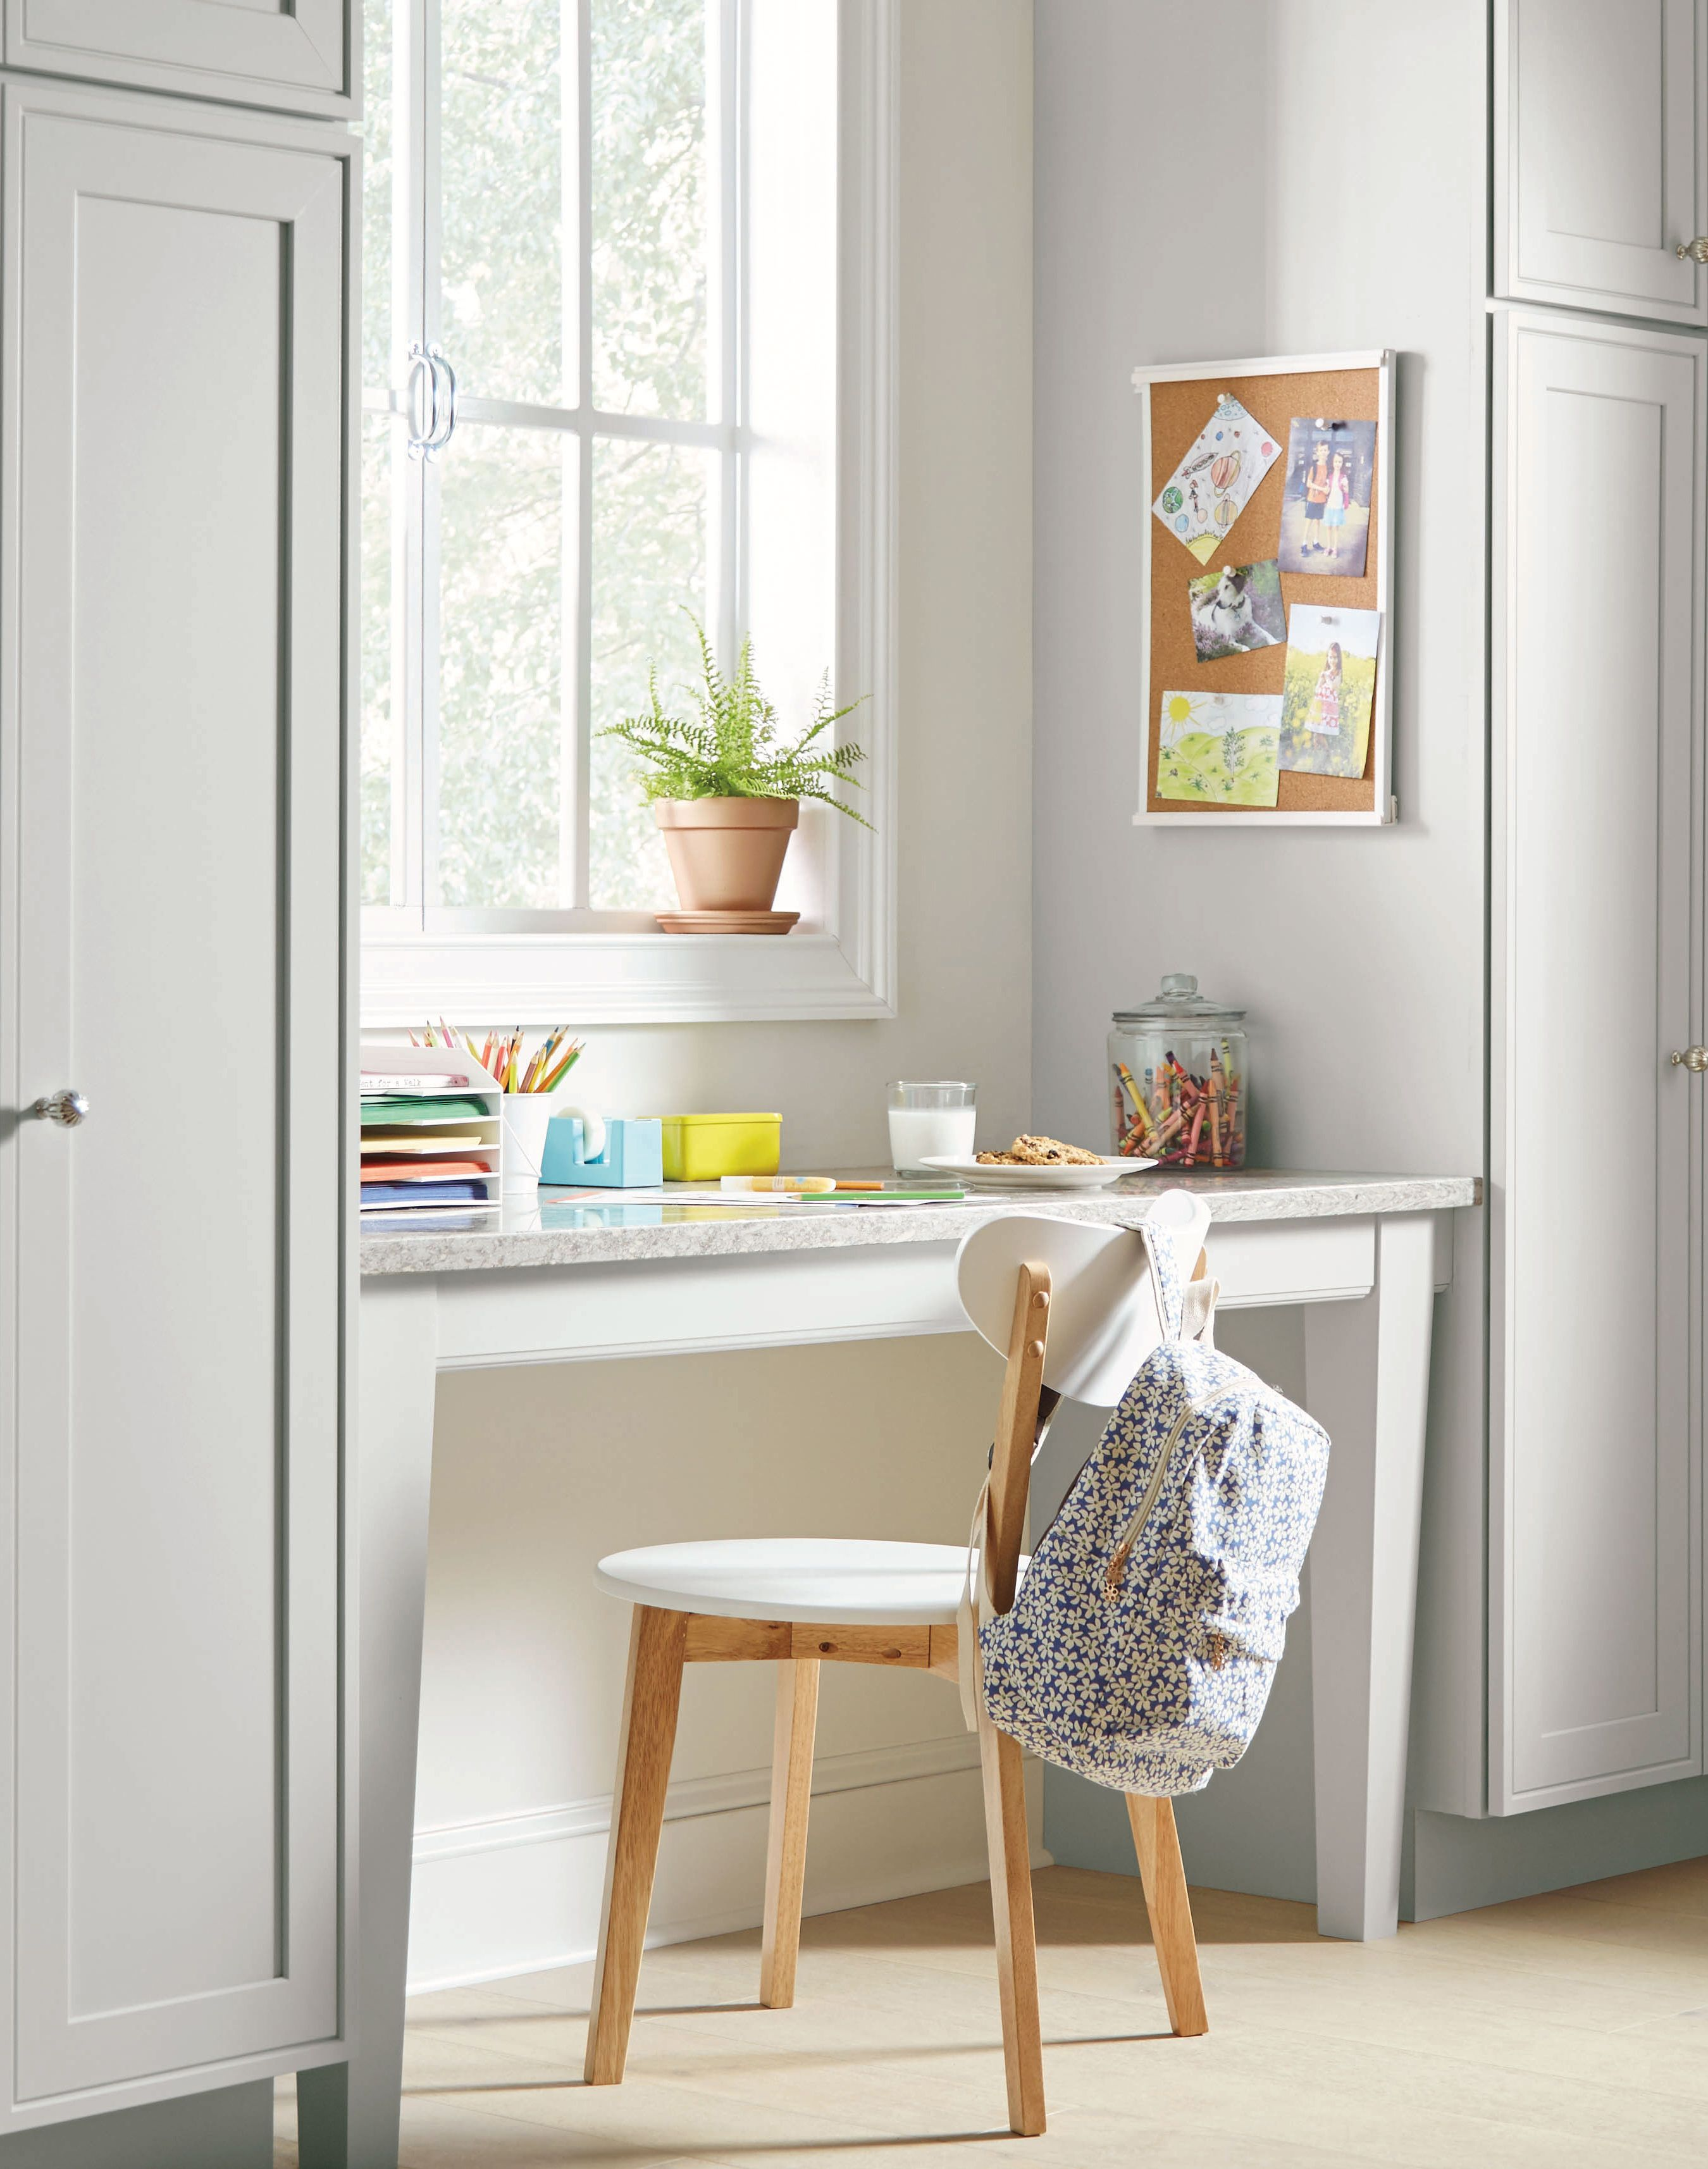 Living Kitchens at the Home Depot | Work stations, Martha stewart ...